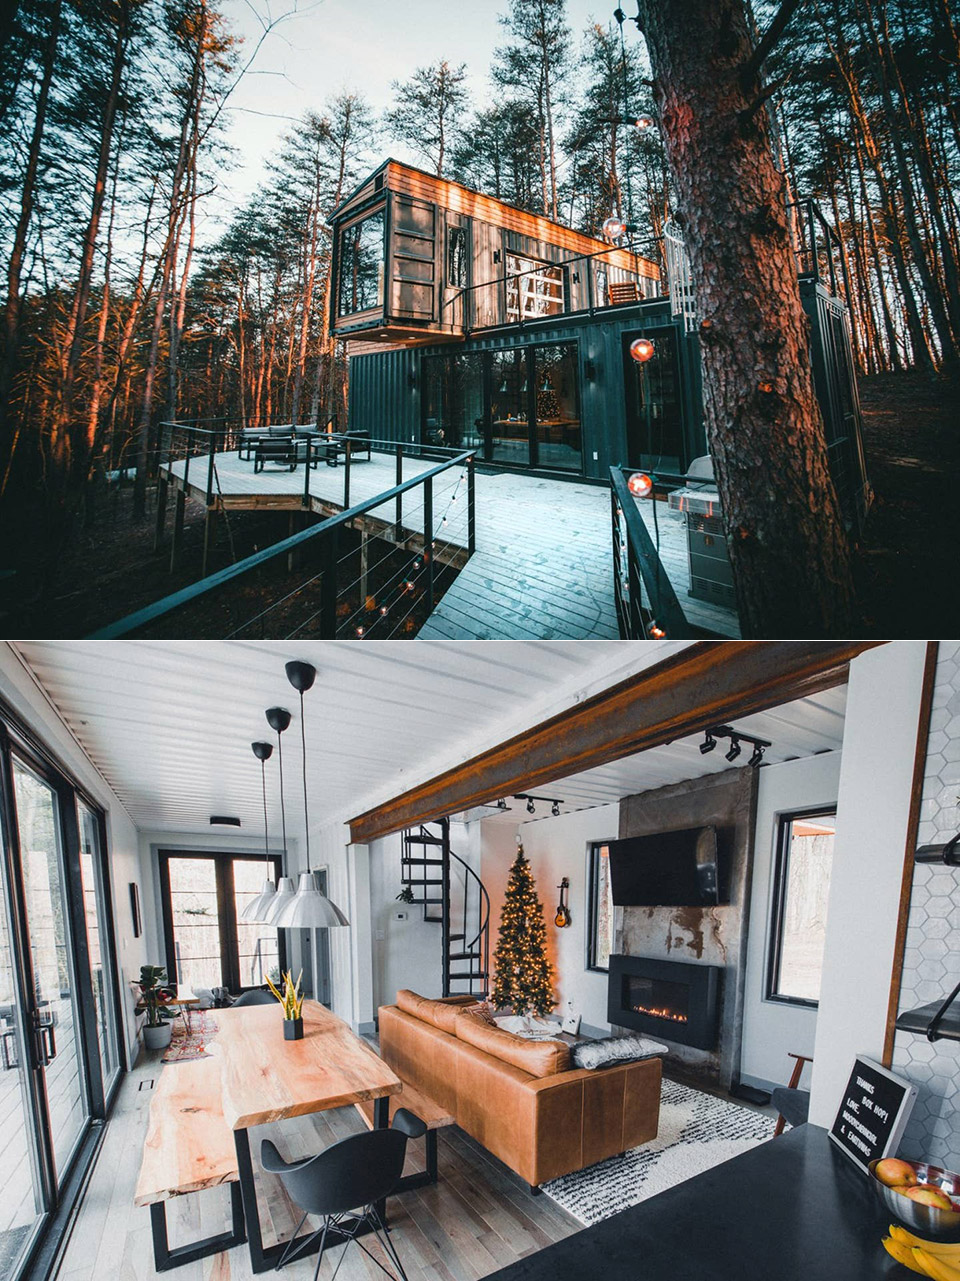 The Box Hop Shipping Container Cabin Airbnb